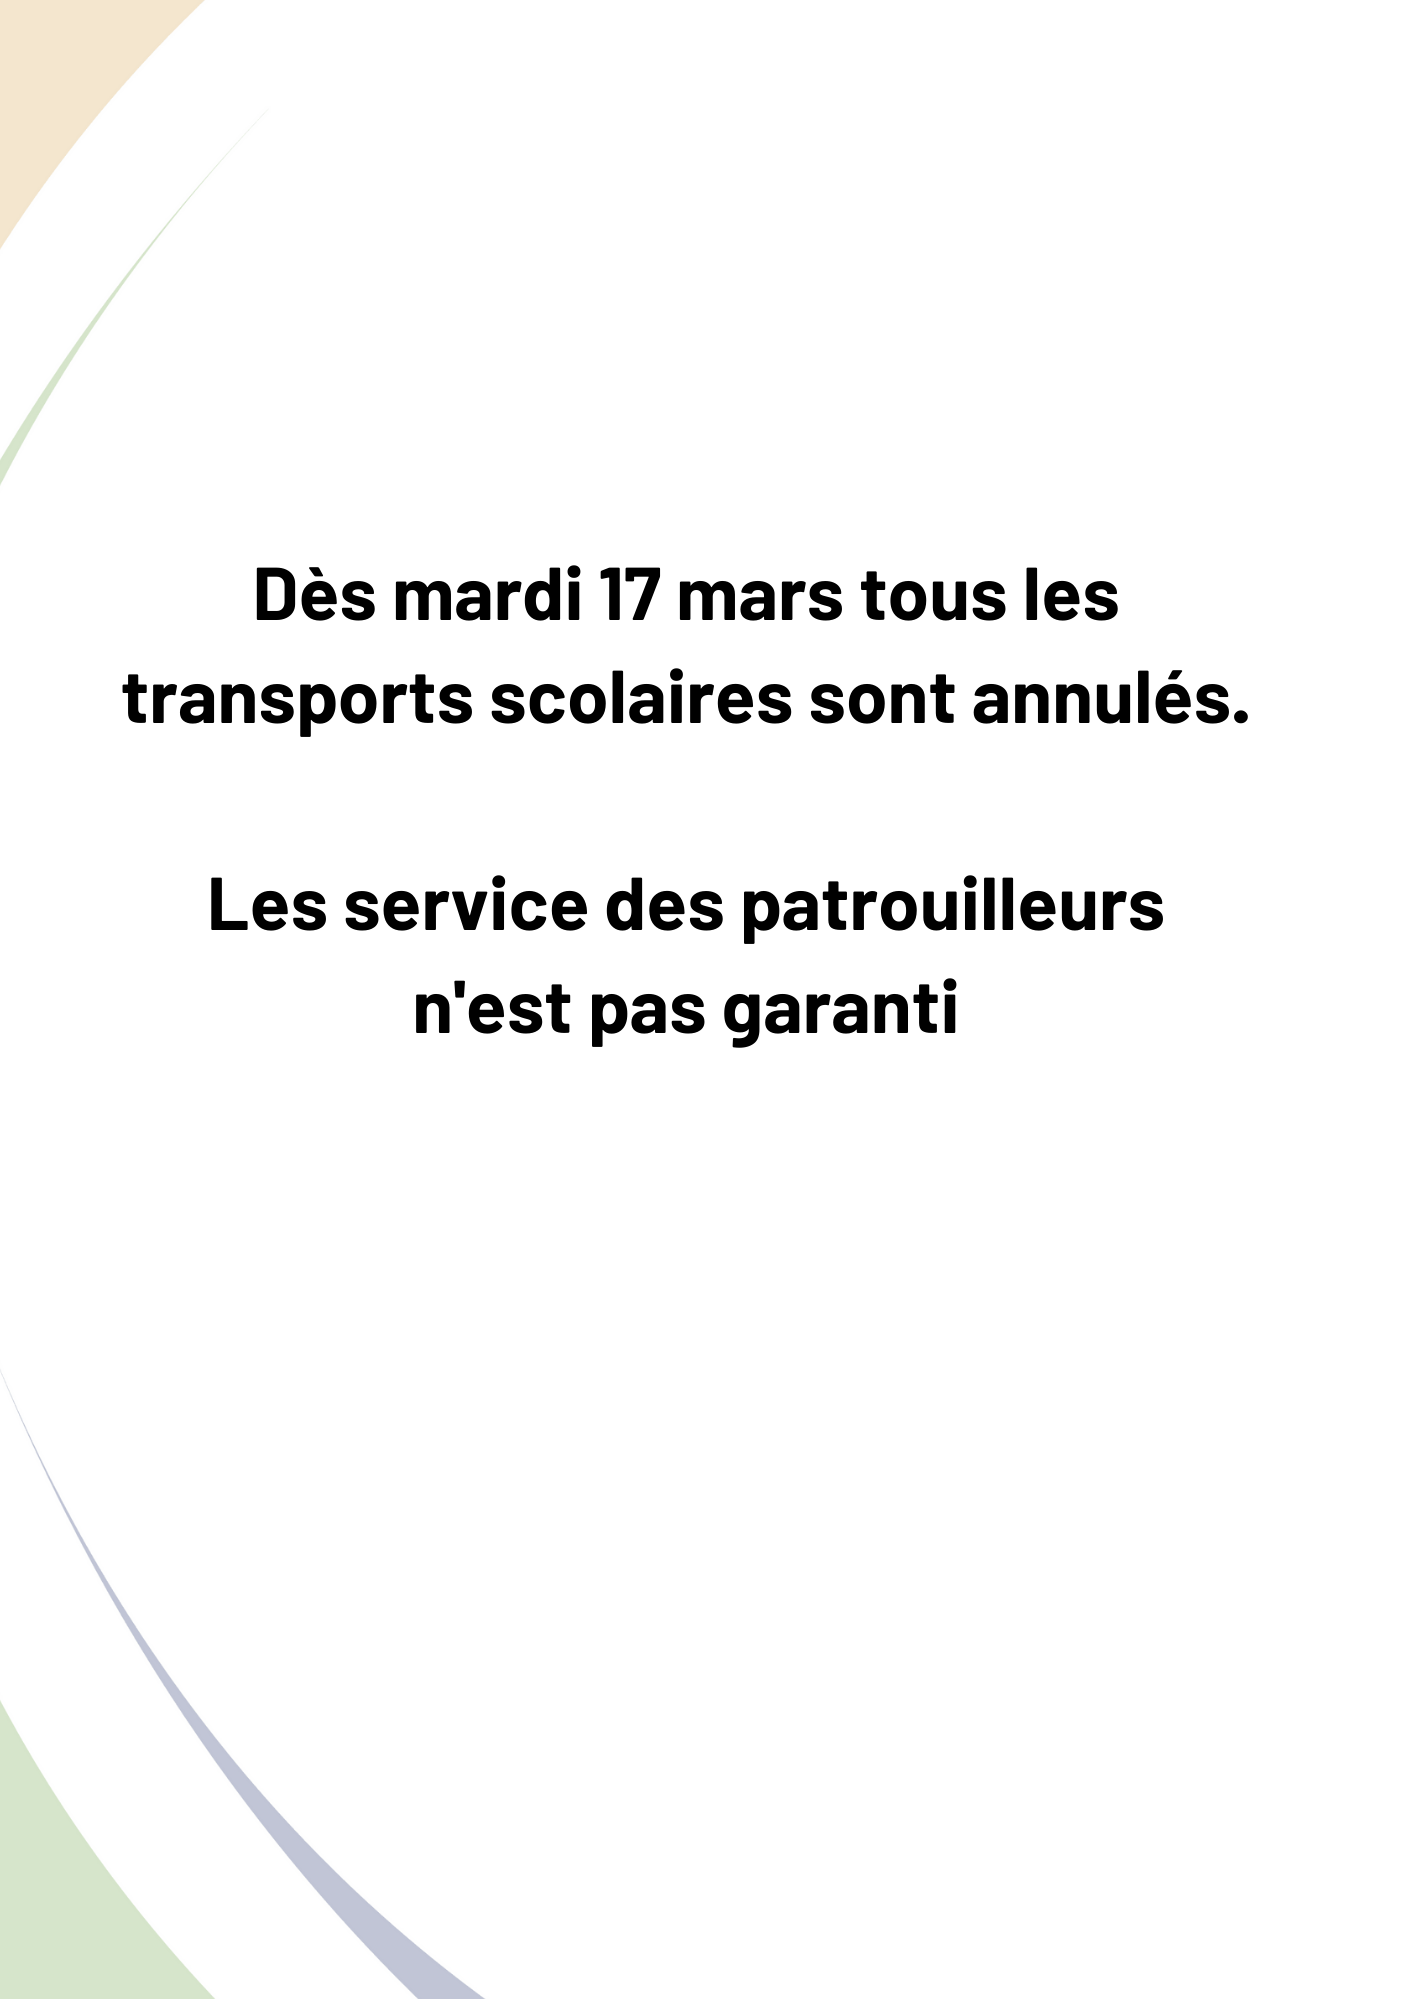 interruption transports scolaires